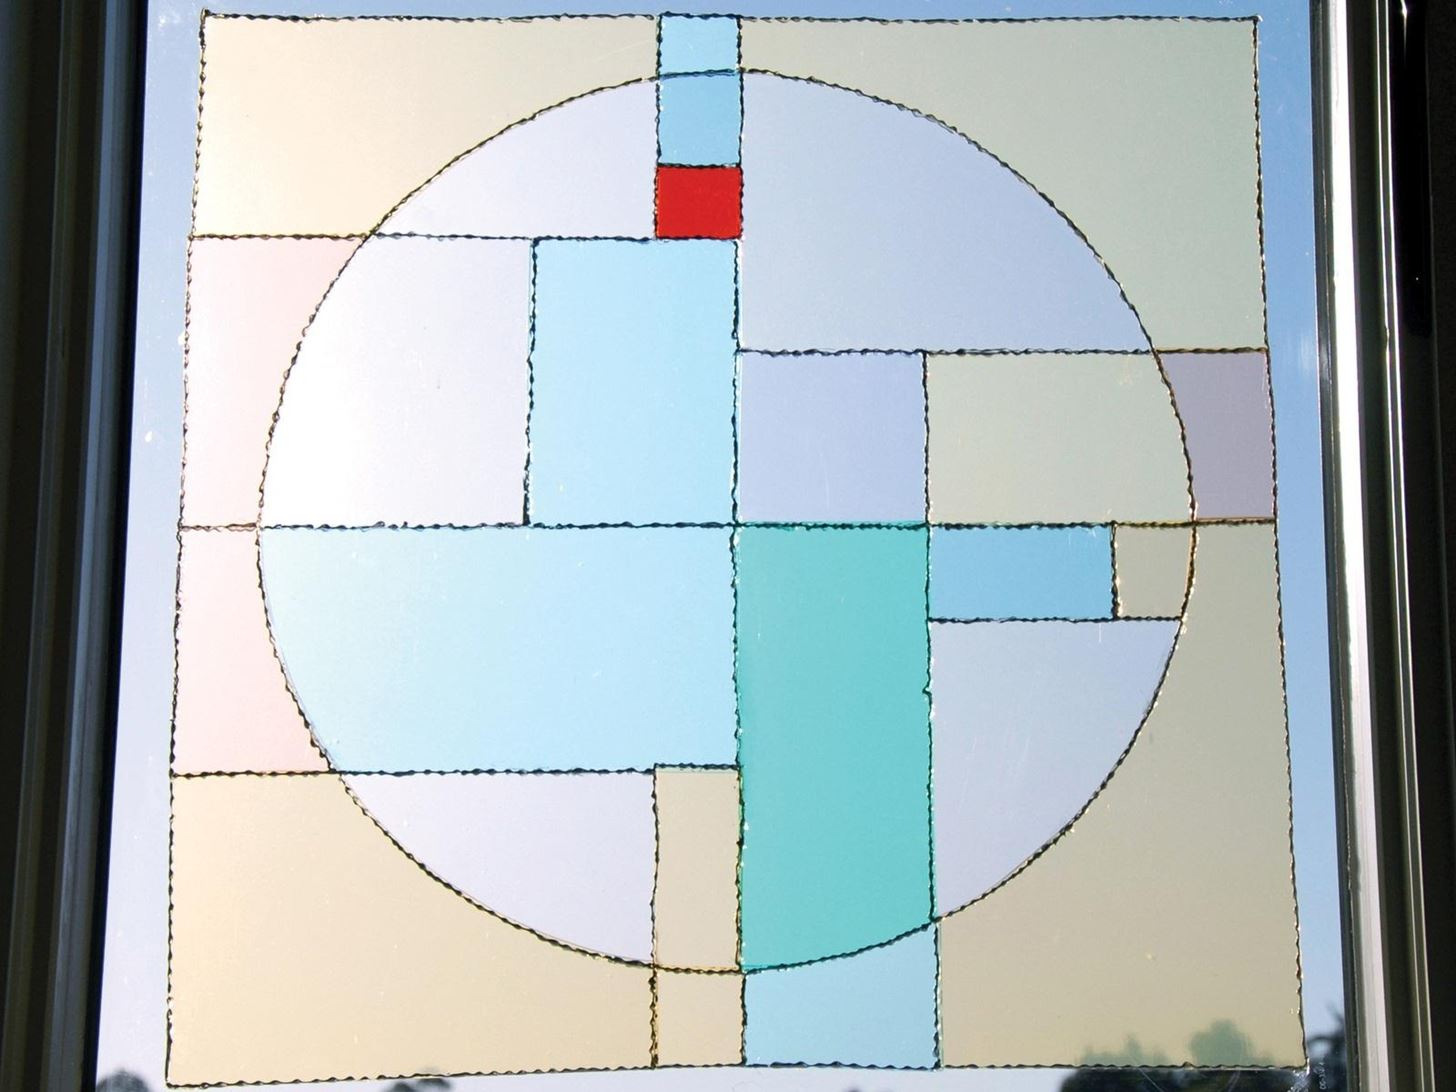 How to Turn a Boring Transparent Window into a Colorful Faux Stained Glass Masterpiece